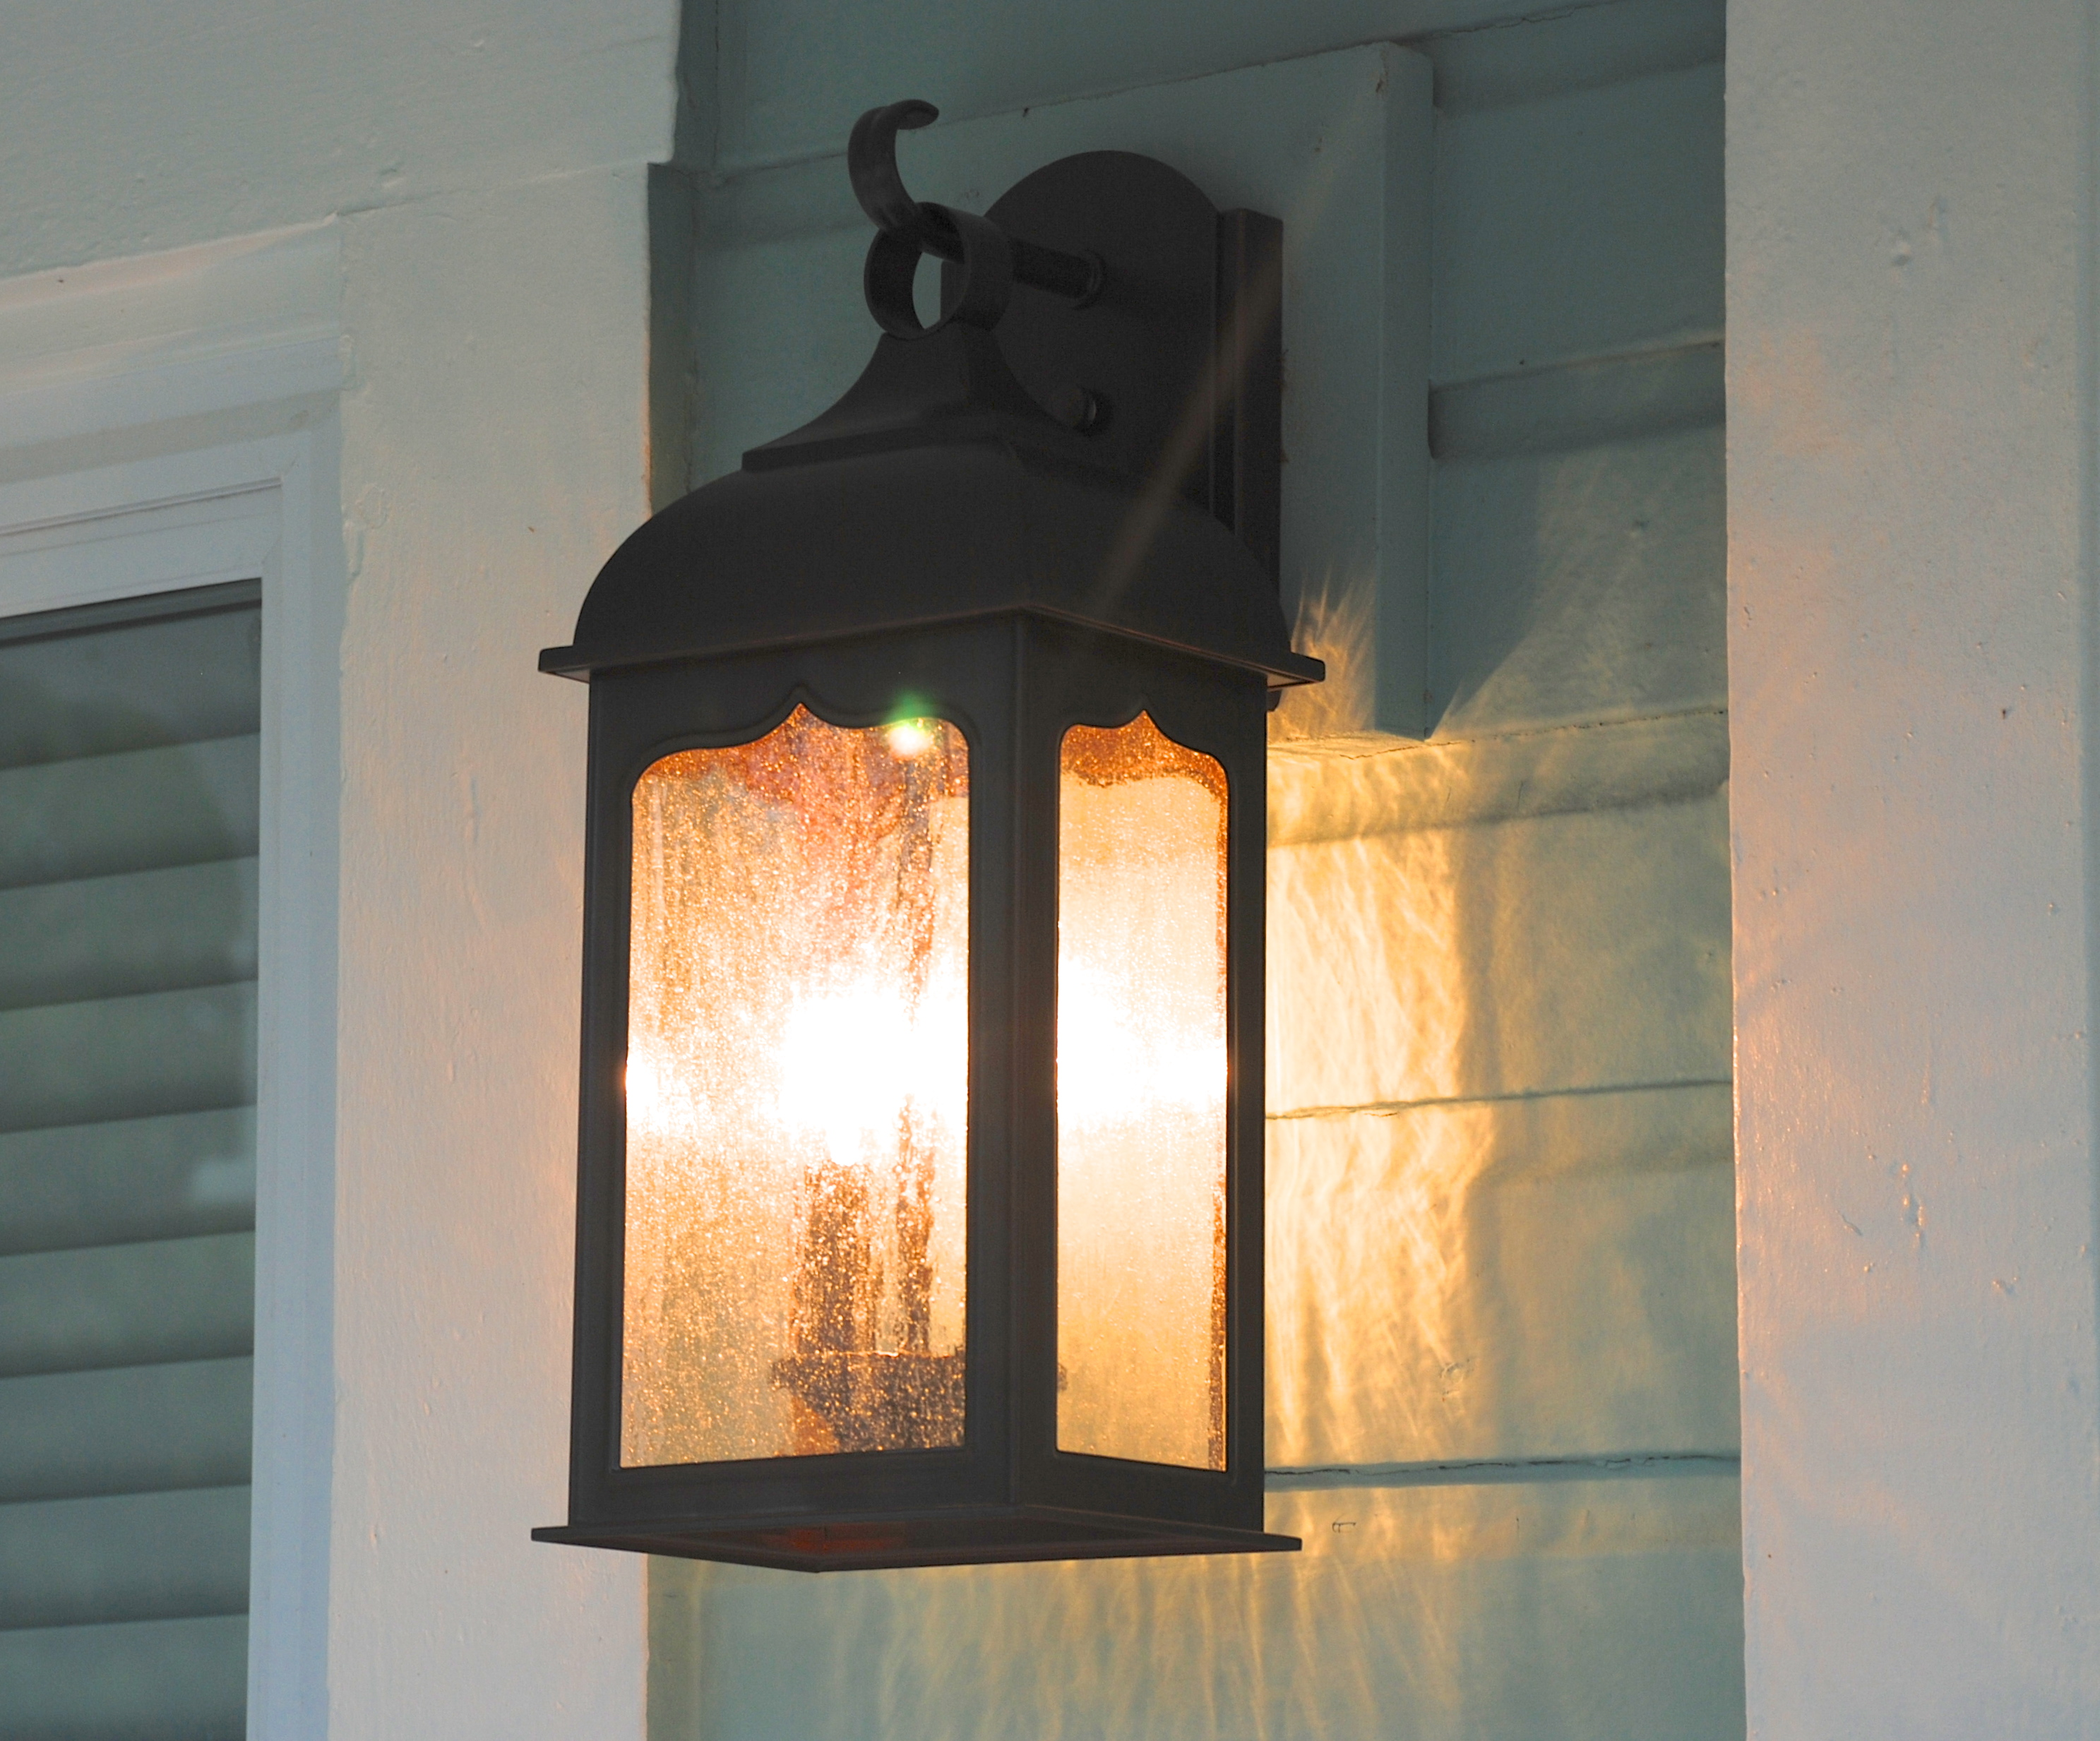 Grout Cottage: Exterior Lighting Choice The Estate of Things